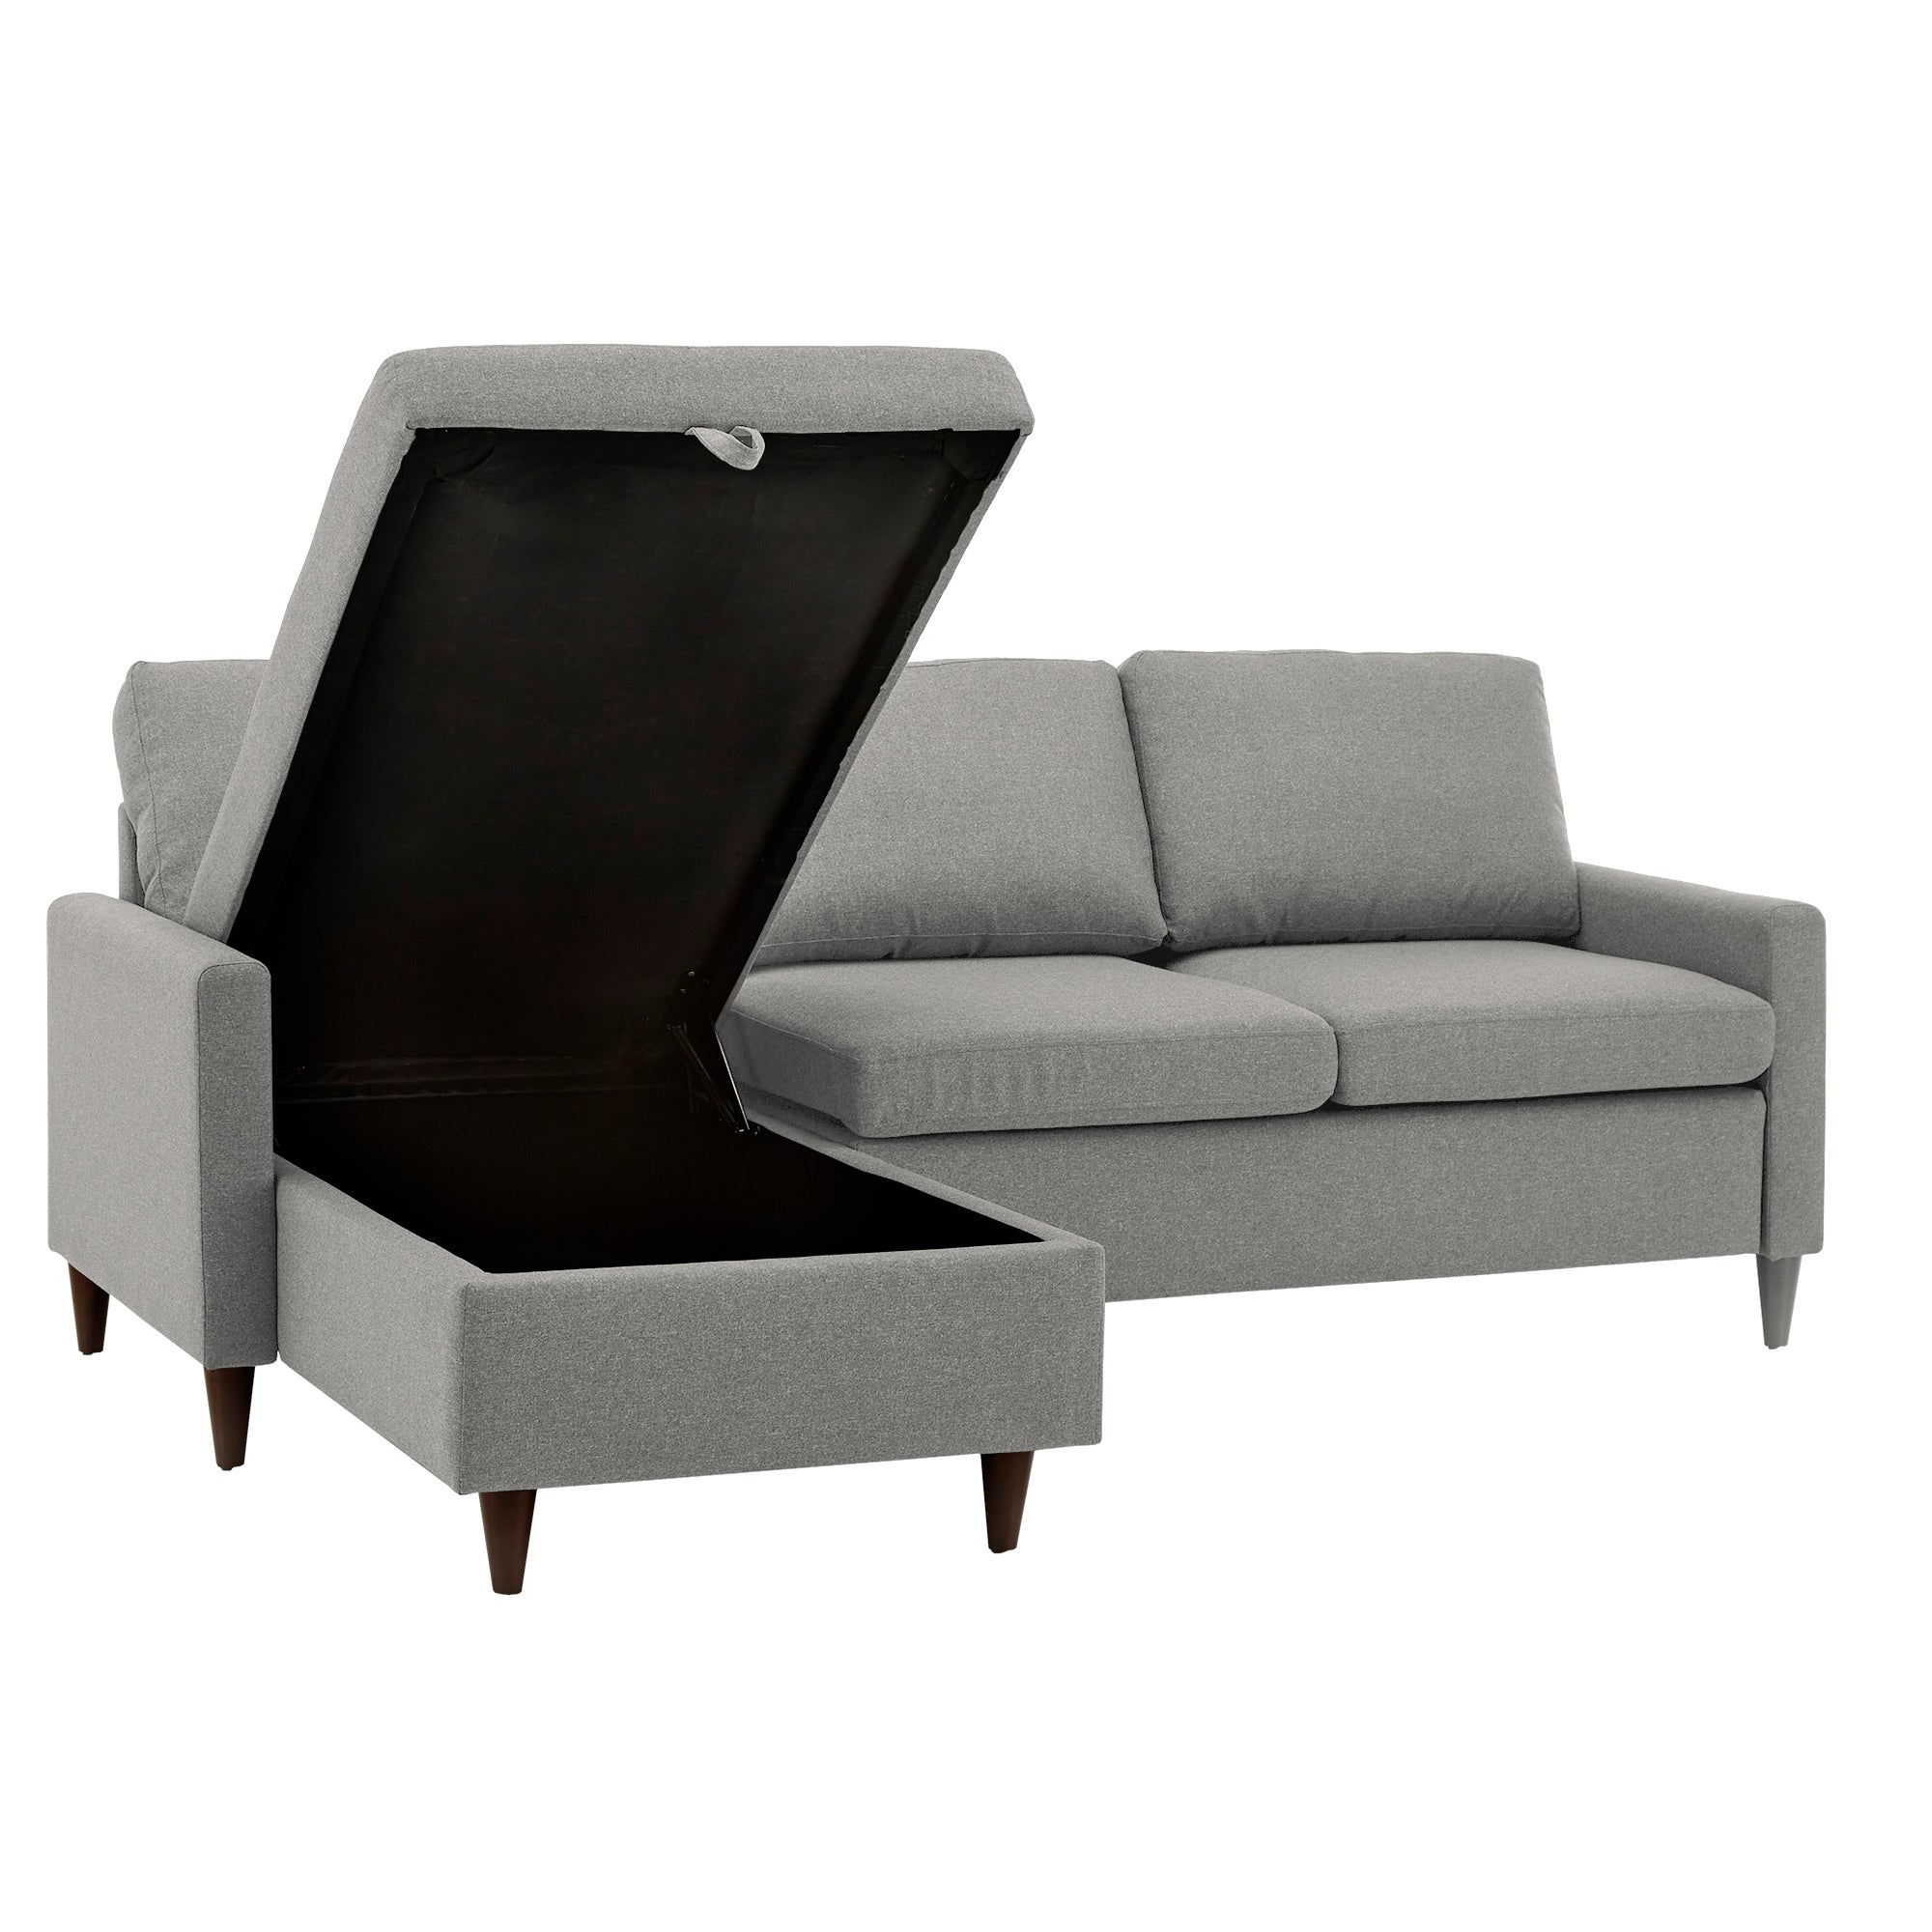 Walnut Finish Fabric Sectional Sofa with Reversible Storage Chaise - Grey